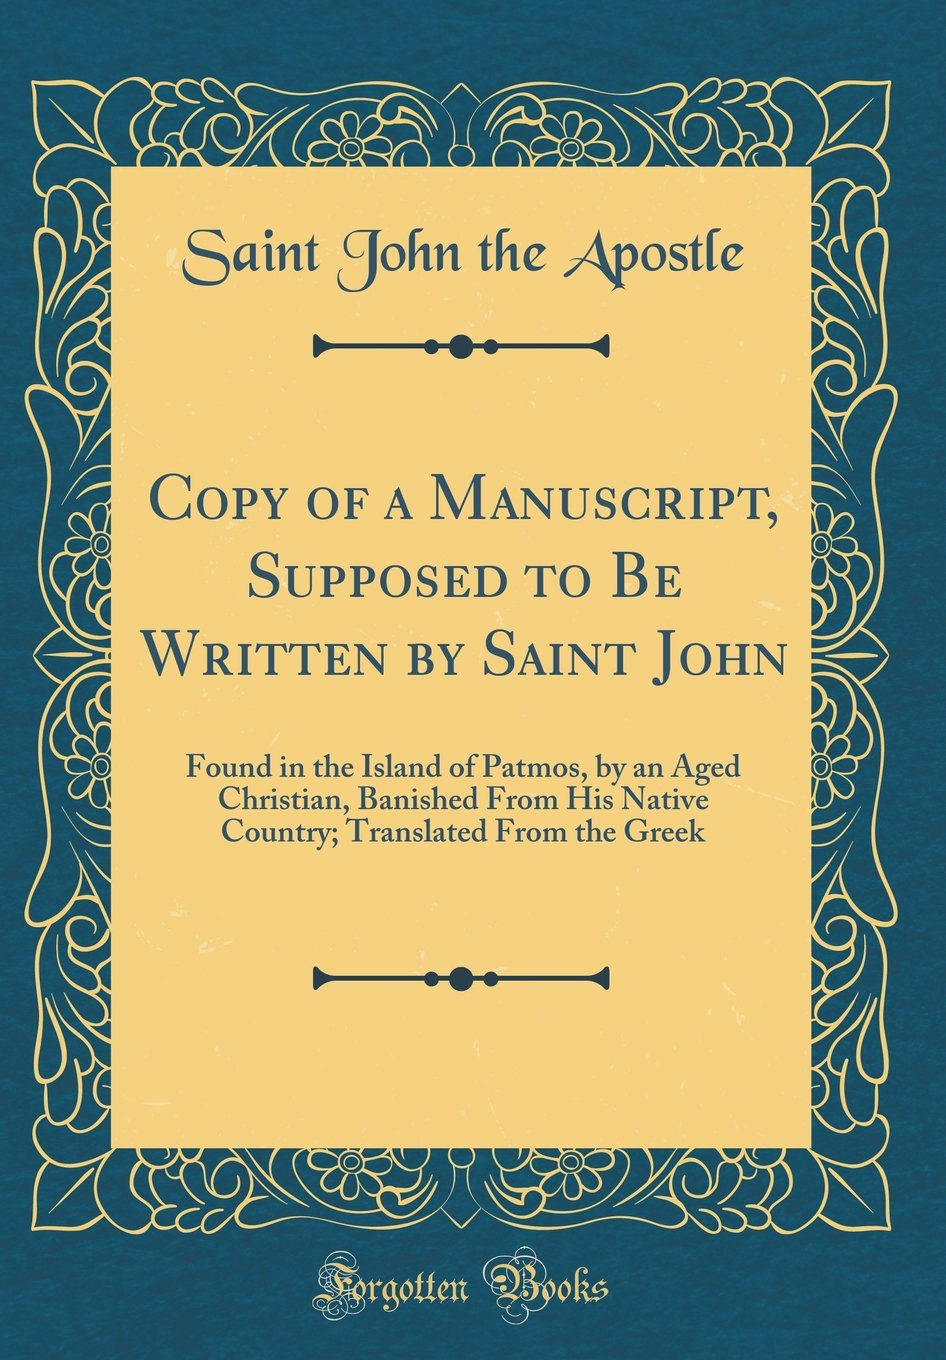 Read Online Copy of a Manuscript, Supposed to Be Written by Saint John: Found in the Island of Patmos, by an Aged Christian, Banished from His Native Country; Translated from the Greek (Classic Reprint) pdf